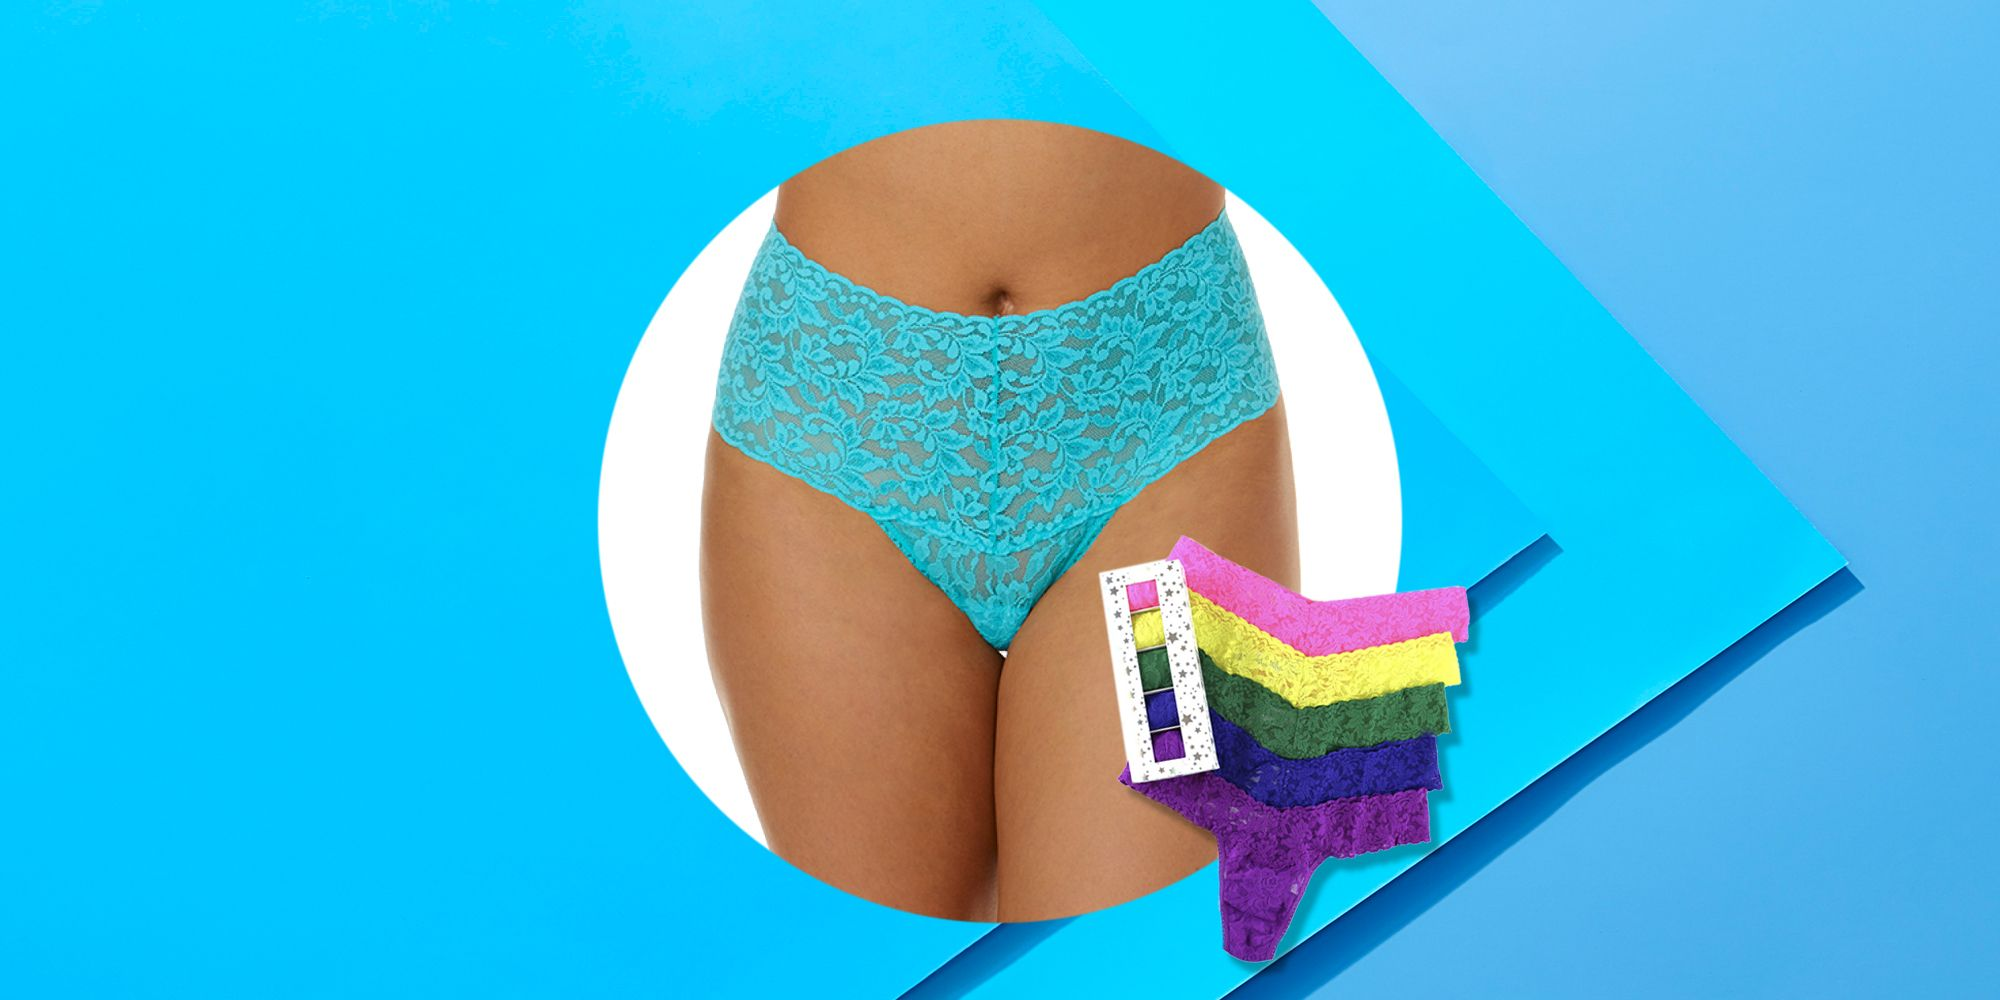 Hanky Panky Just Kicked Off Their Memorial Day Weekend Sale And You Can't Miss It